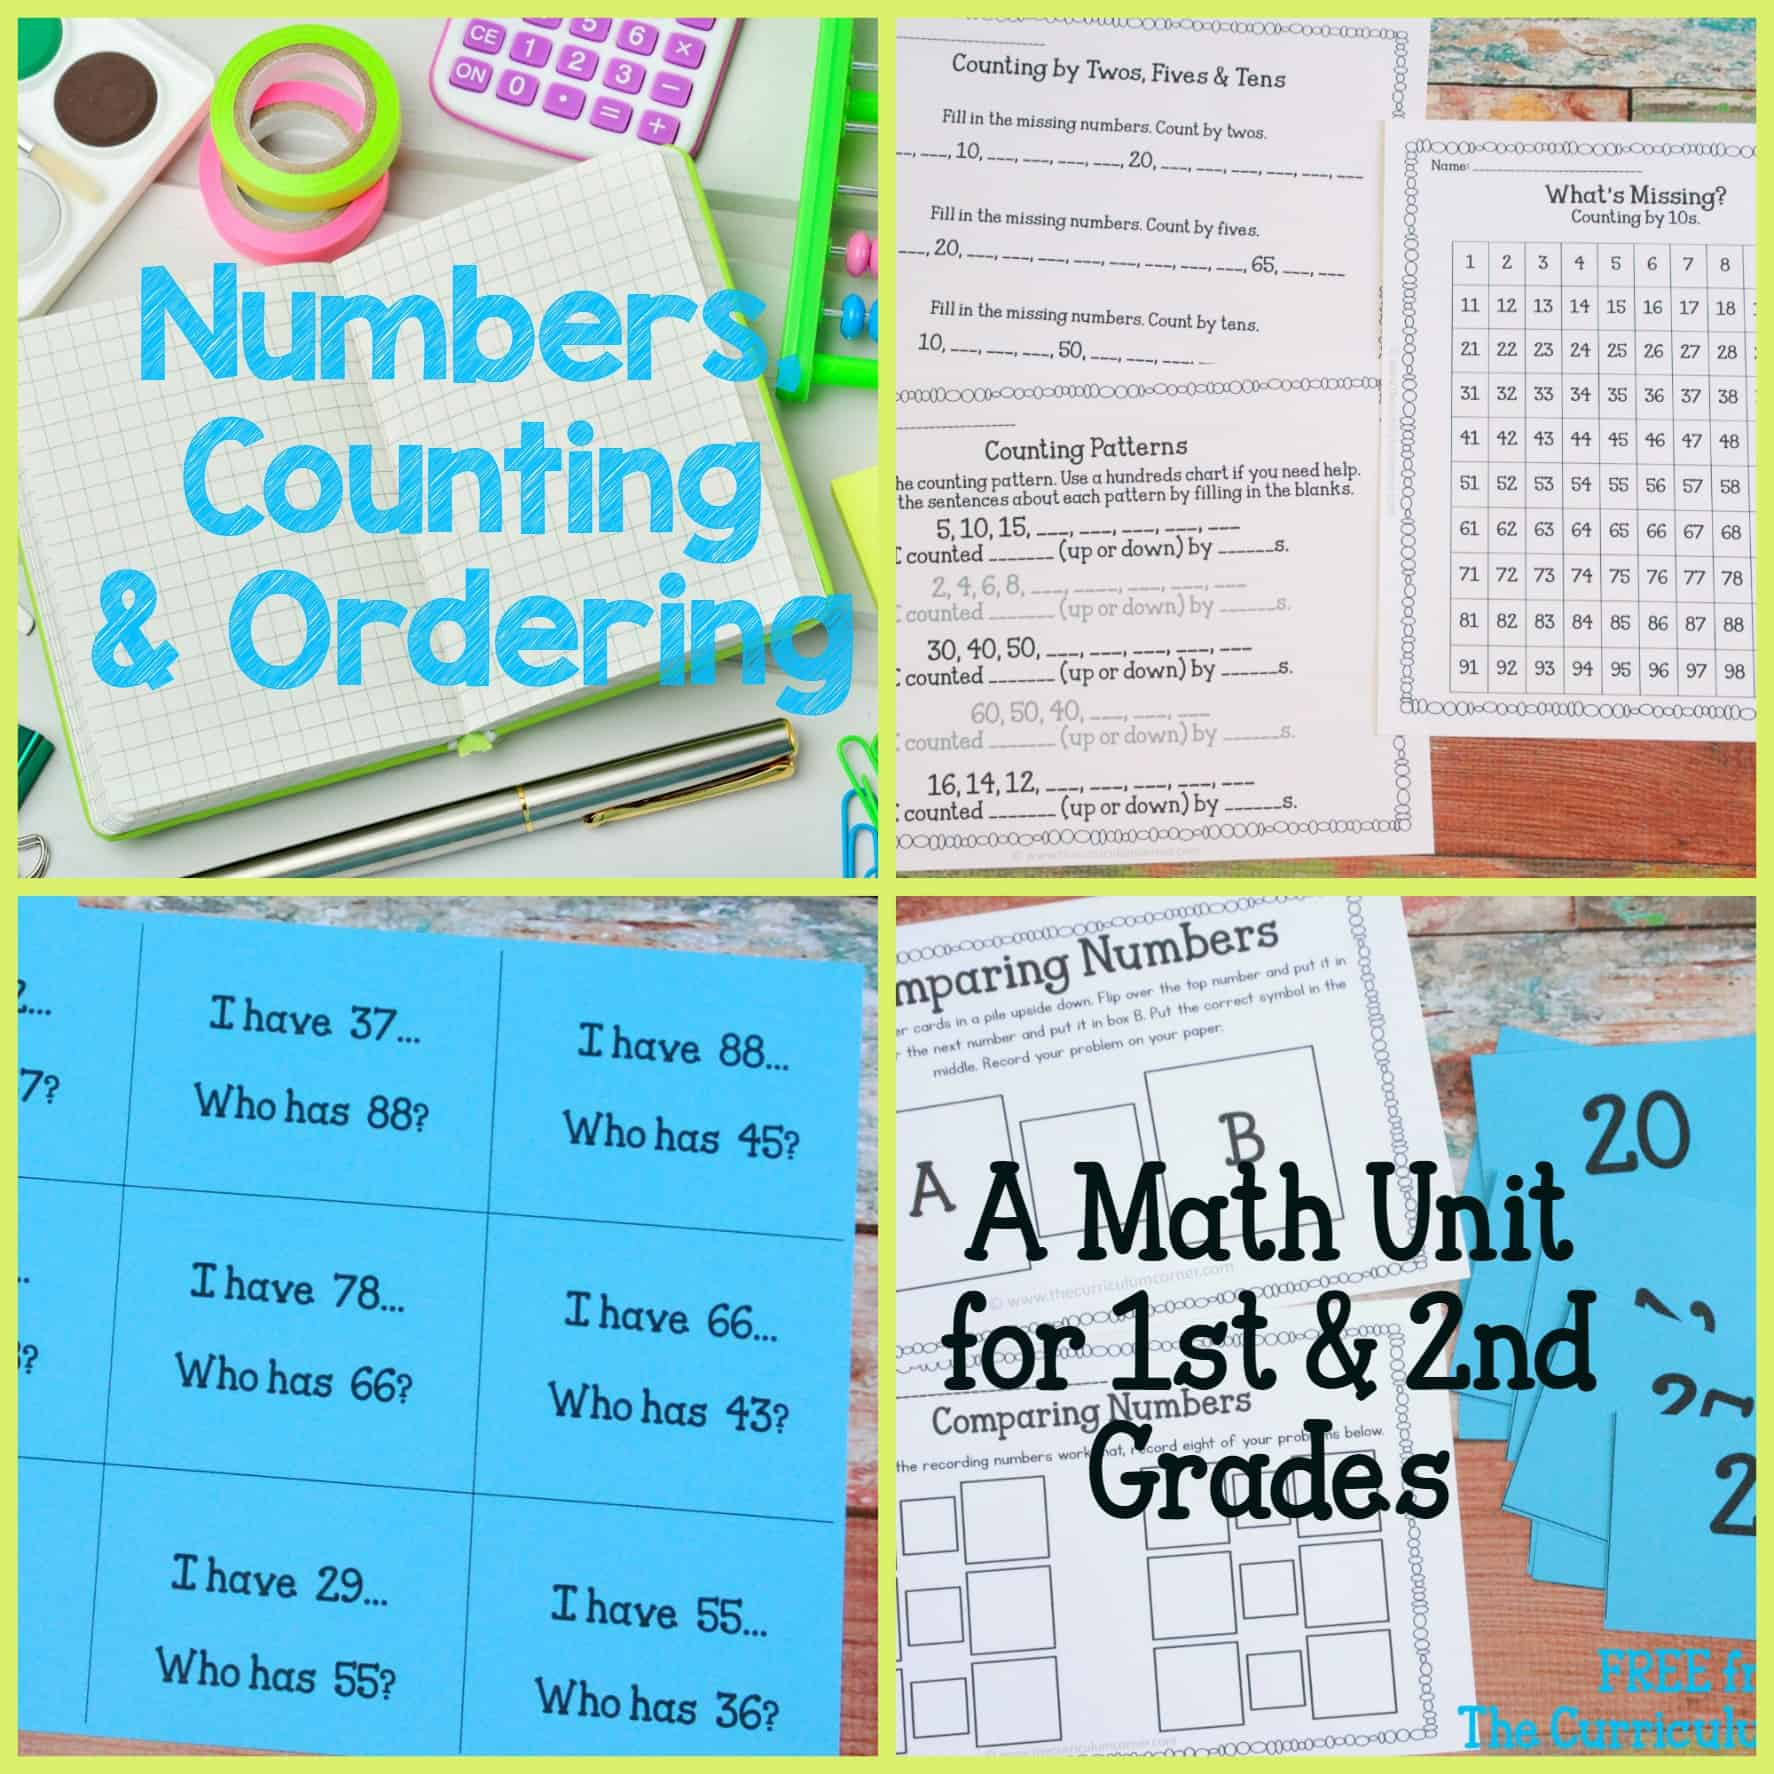 Numbers, Counting & Ordering